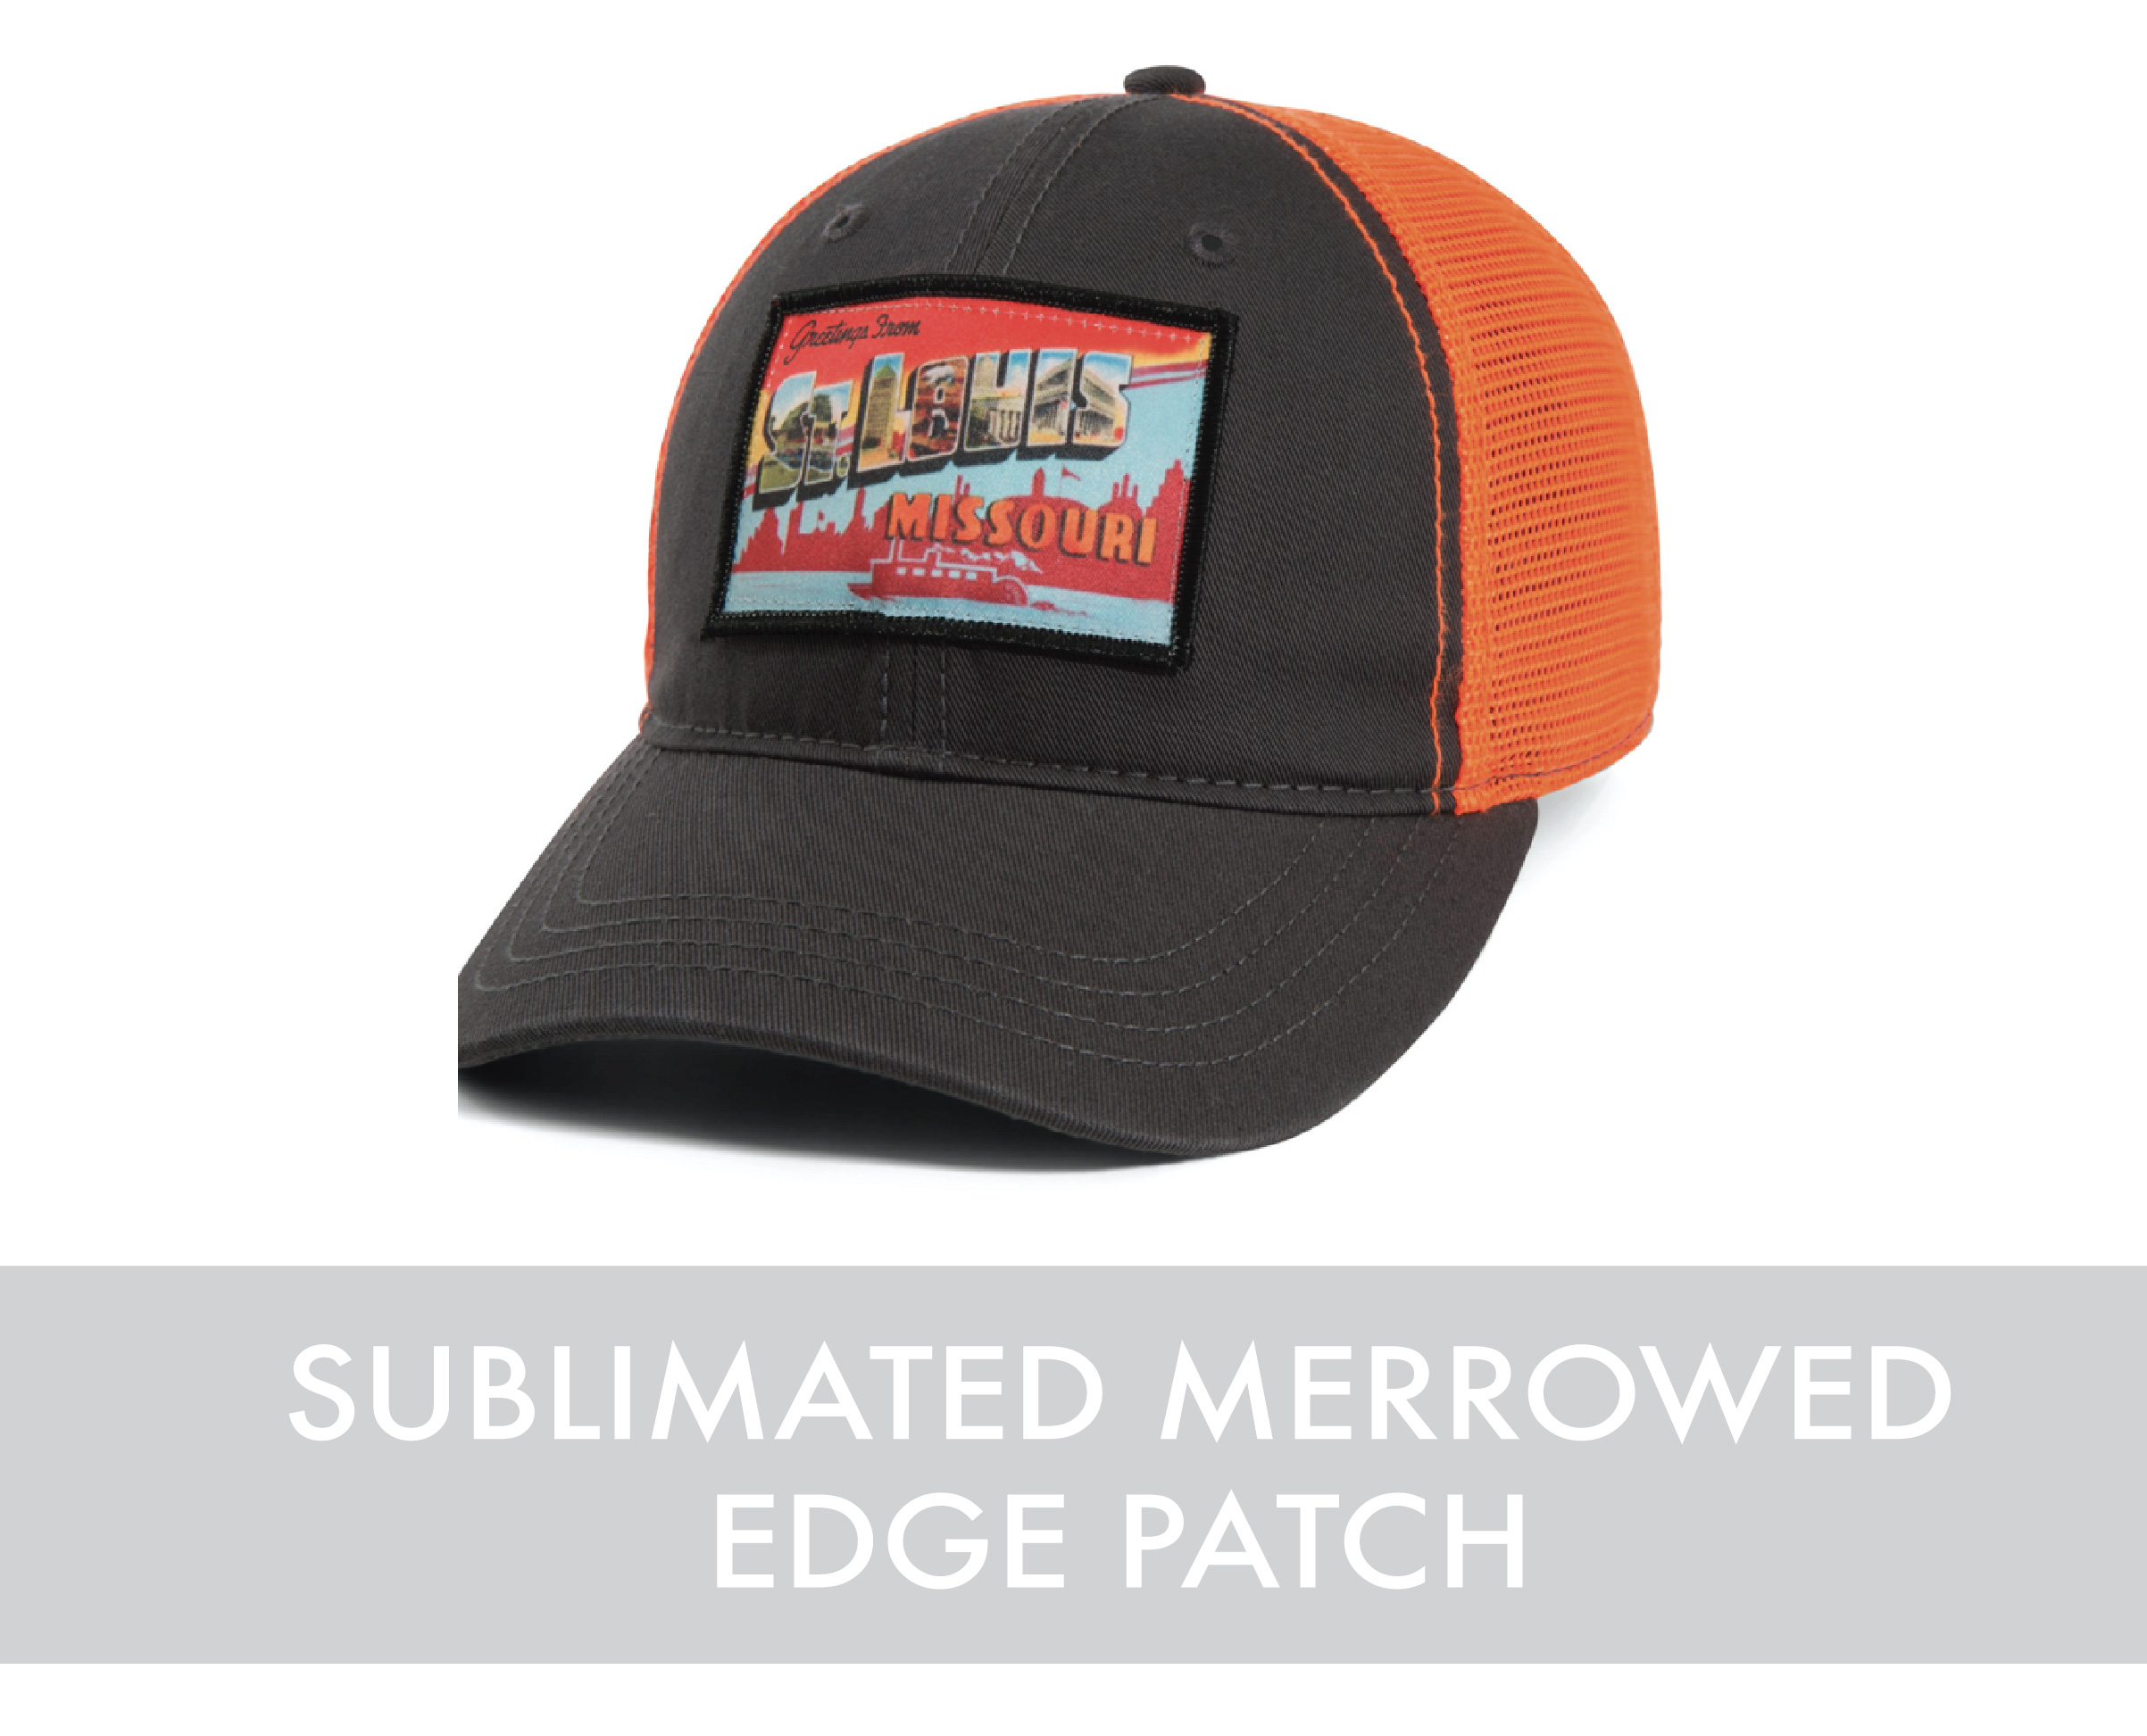 Sublimated Merrowed Edge Patch